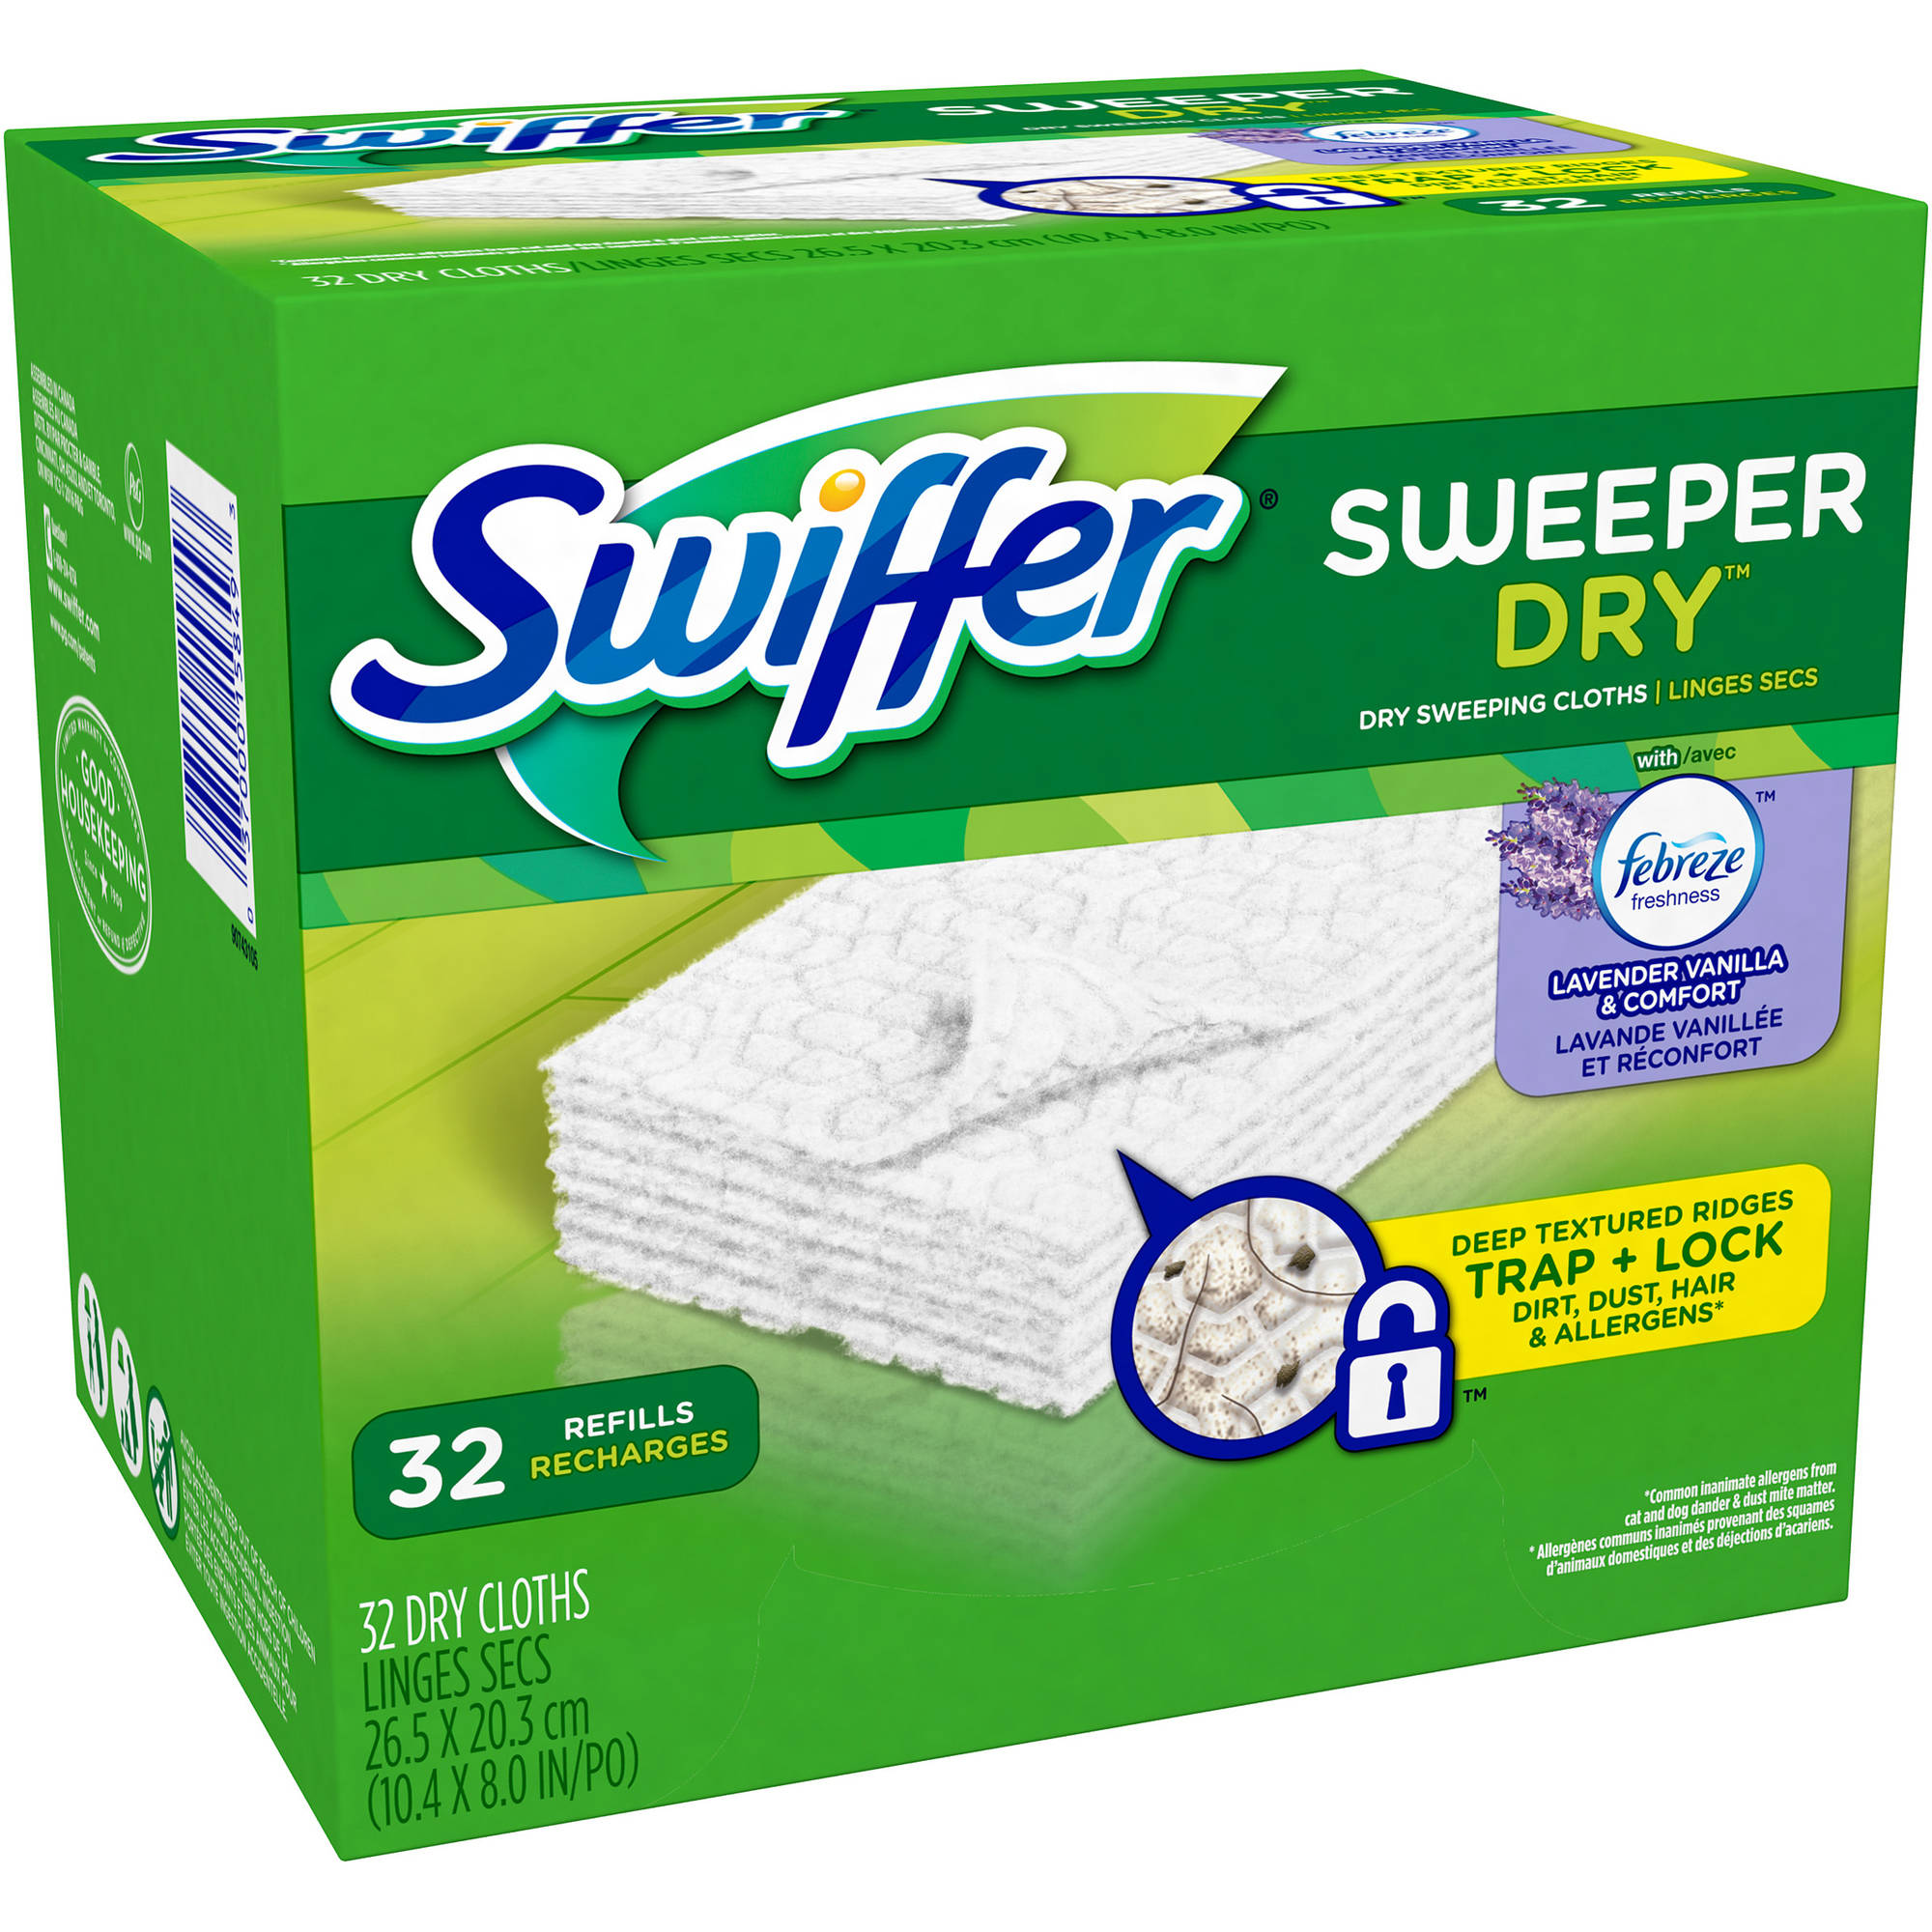 Swiffer Sweeper Dry Sweeping Cloths Refills with Febreze Lavender Vanilla & Comfort Scent, 32 count